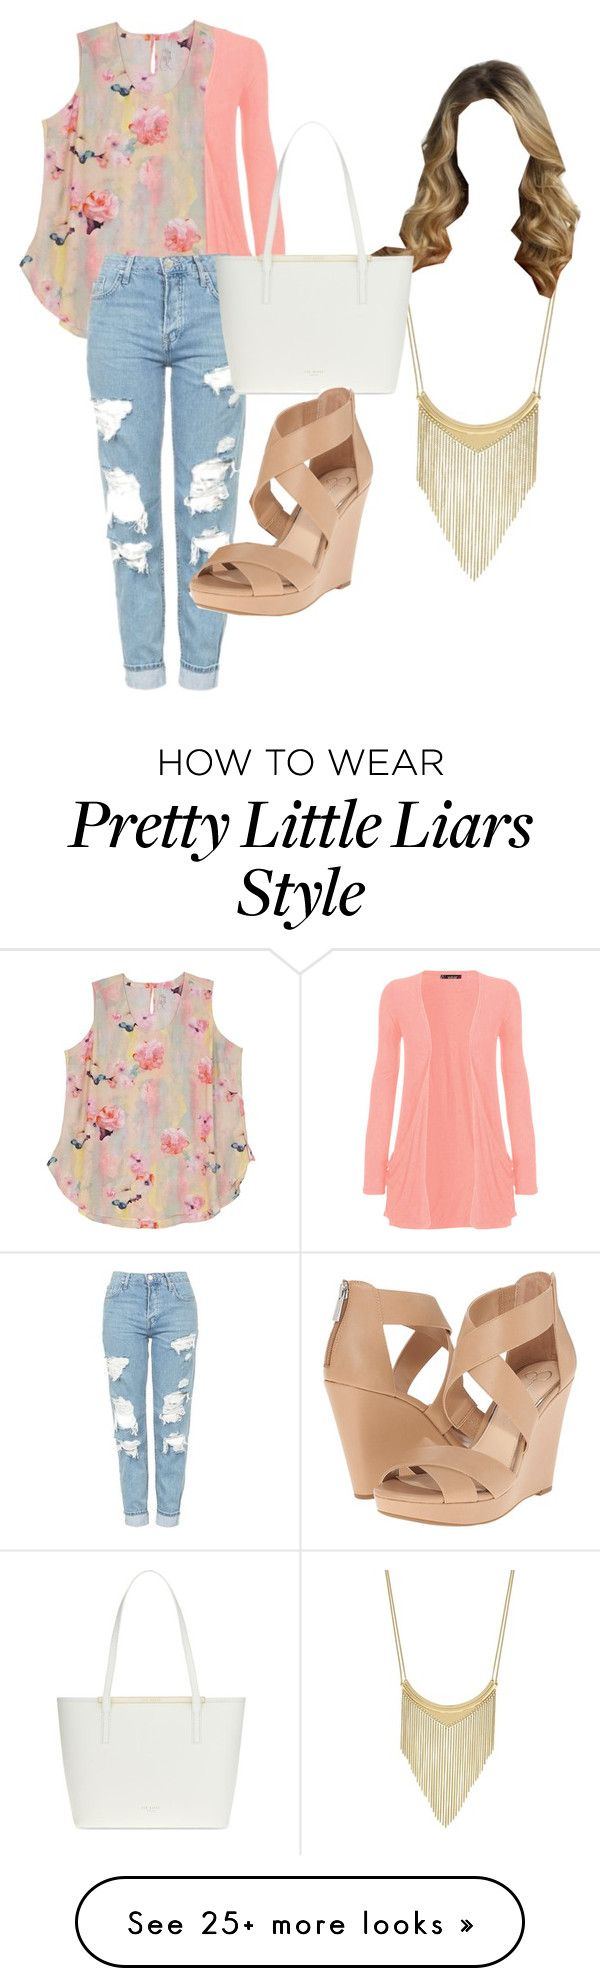 """alison dilaurentis"" by princessdayna on Polyvore featuring Melissa McCarthy Seven7, WearAll, Topshop, BCBGeneration, Ted Baker, Jessica Simpson and plus size clothing"